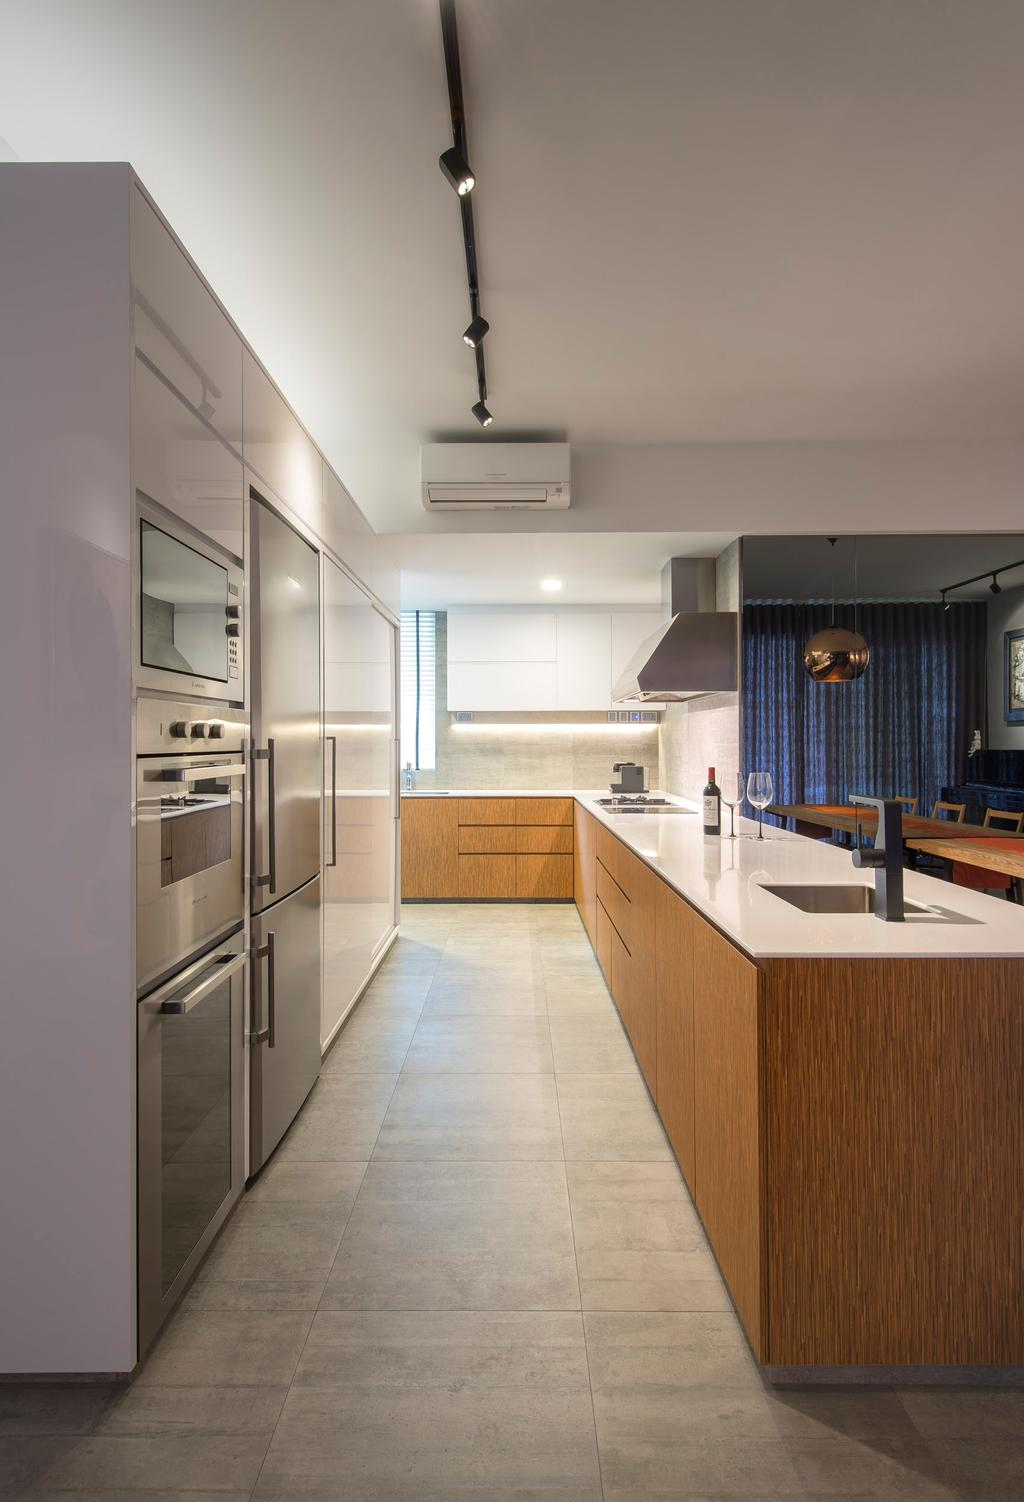 Eclectic, Condo, Kitchen, Caribbean at Keppel Bay, Interior Designer, Space Vision Design, Linear, White, Metallic, Track Lighting, Tile, Tiles, Marble Surafce, Wood, Laminate, Wood Laminate, Hanging Light, Pendant Light, Exhaust Hood, Mirror, Indoors, Interior Design, Room